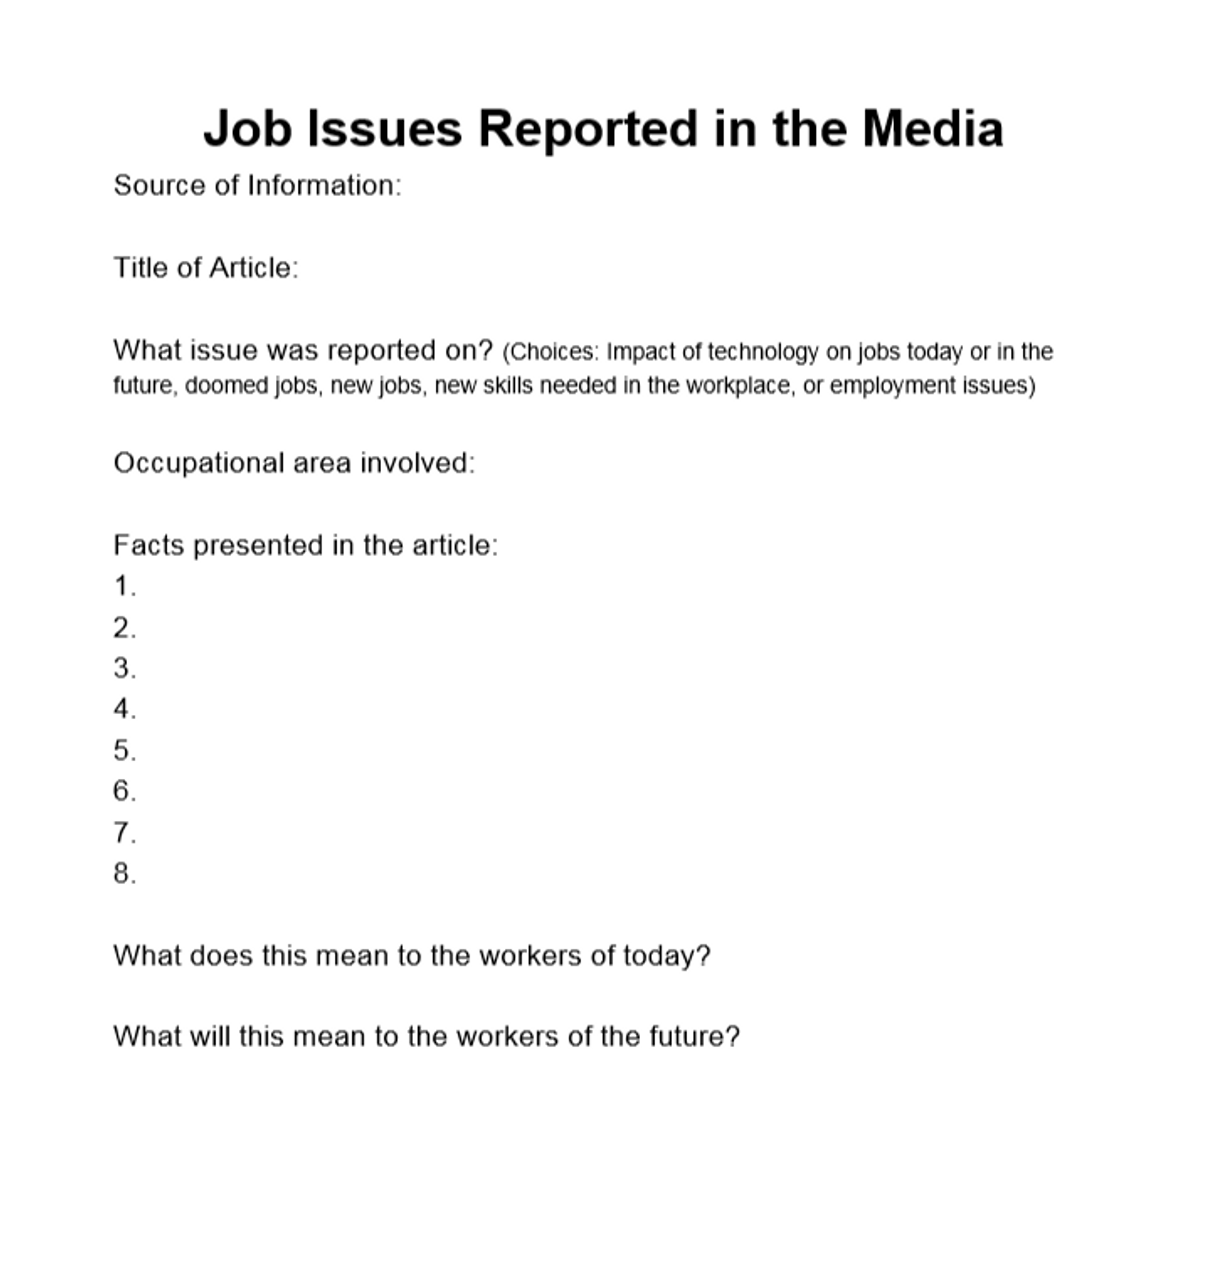 Job Issues Reported in the Media